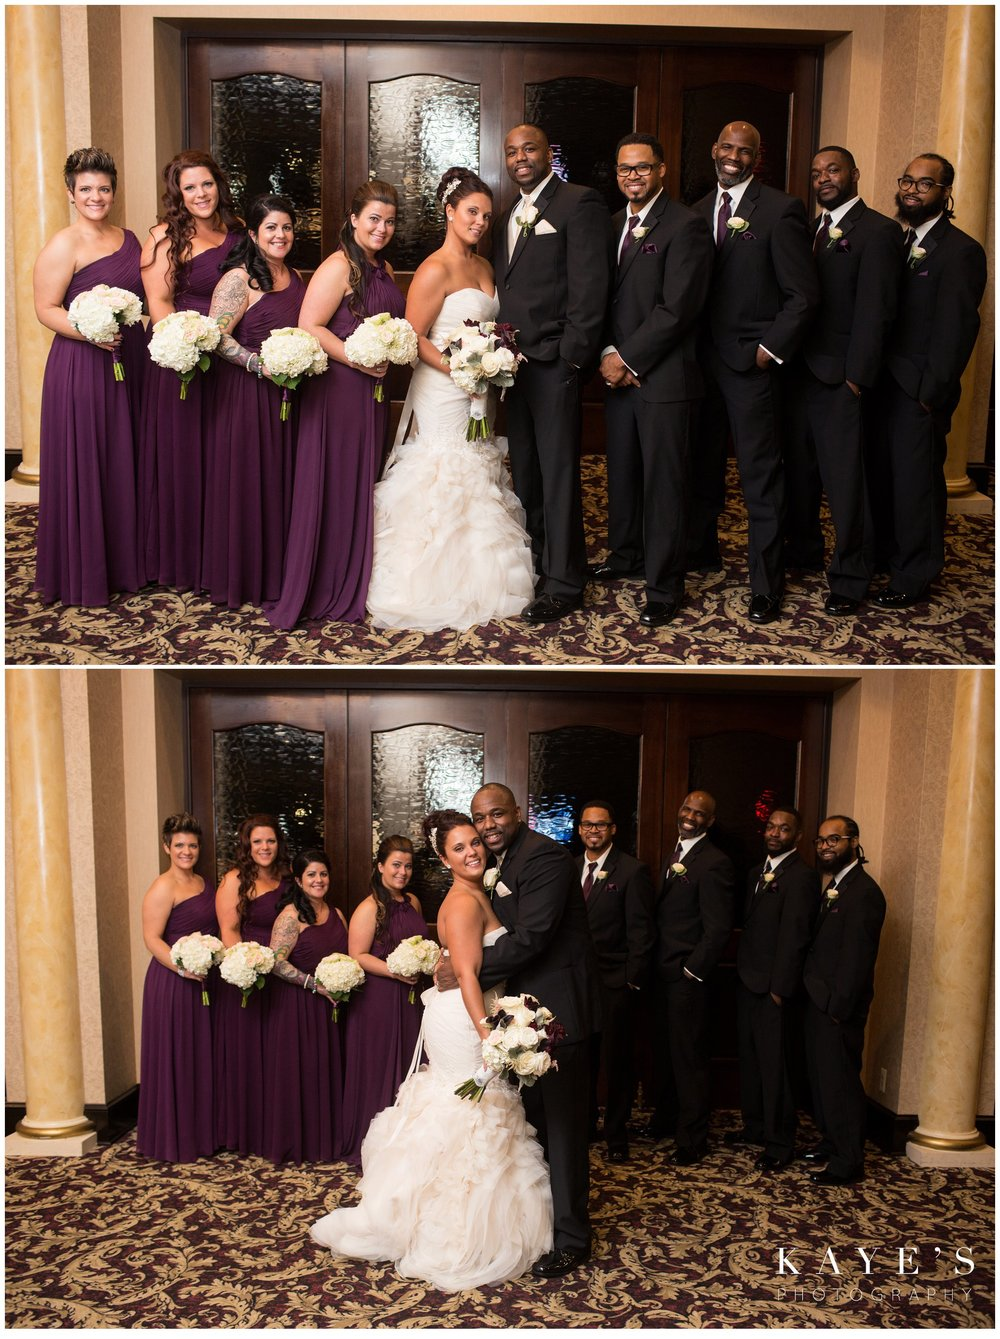 Kayes Photography- howell-michigan-wedding-photographer_0654.jpg